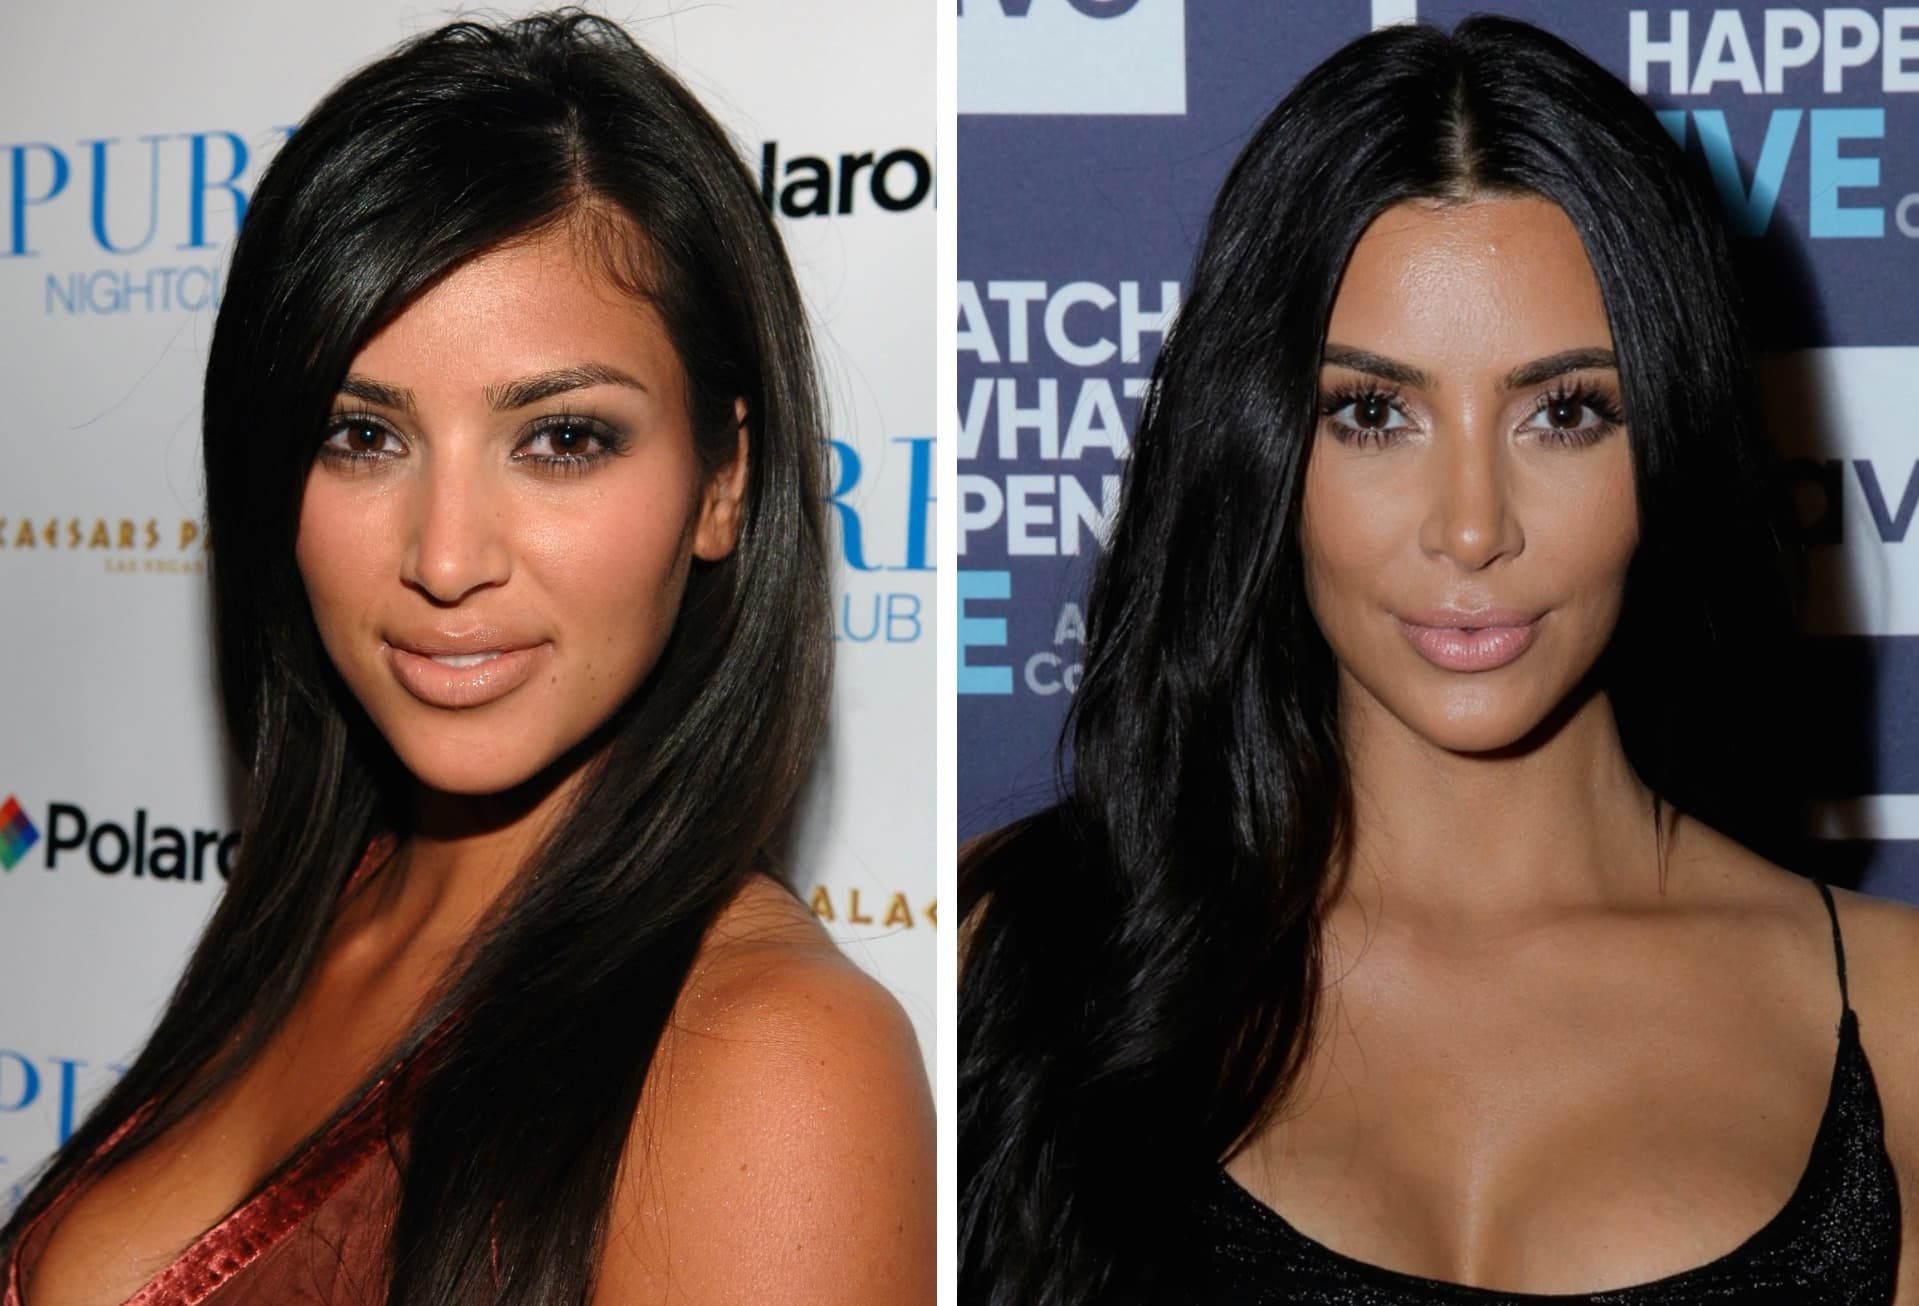 The Kim Kardashian Family Before And After Plastic Surgery photo - 1